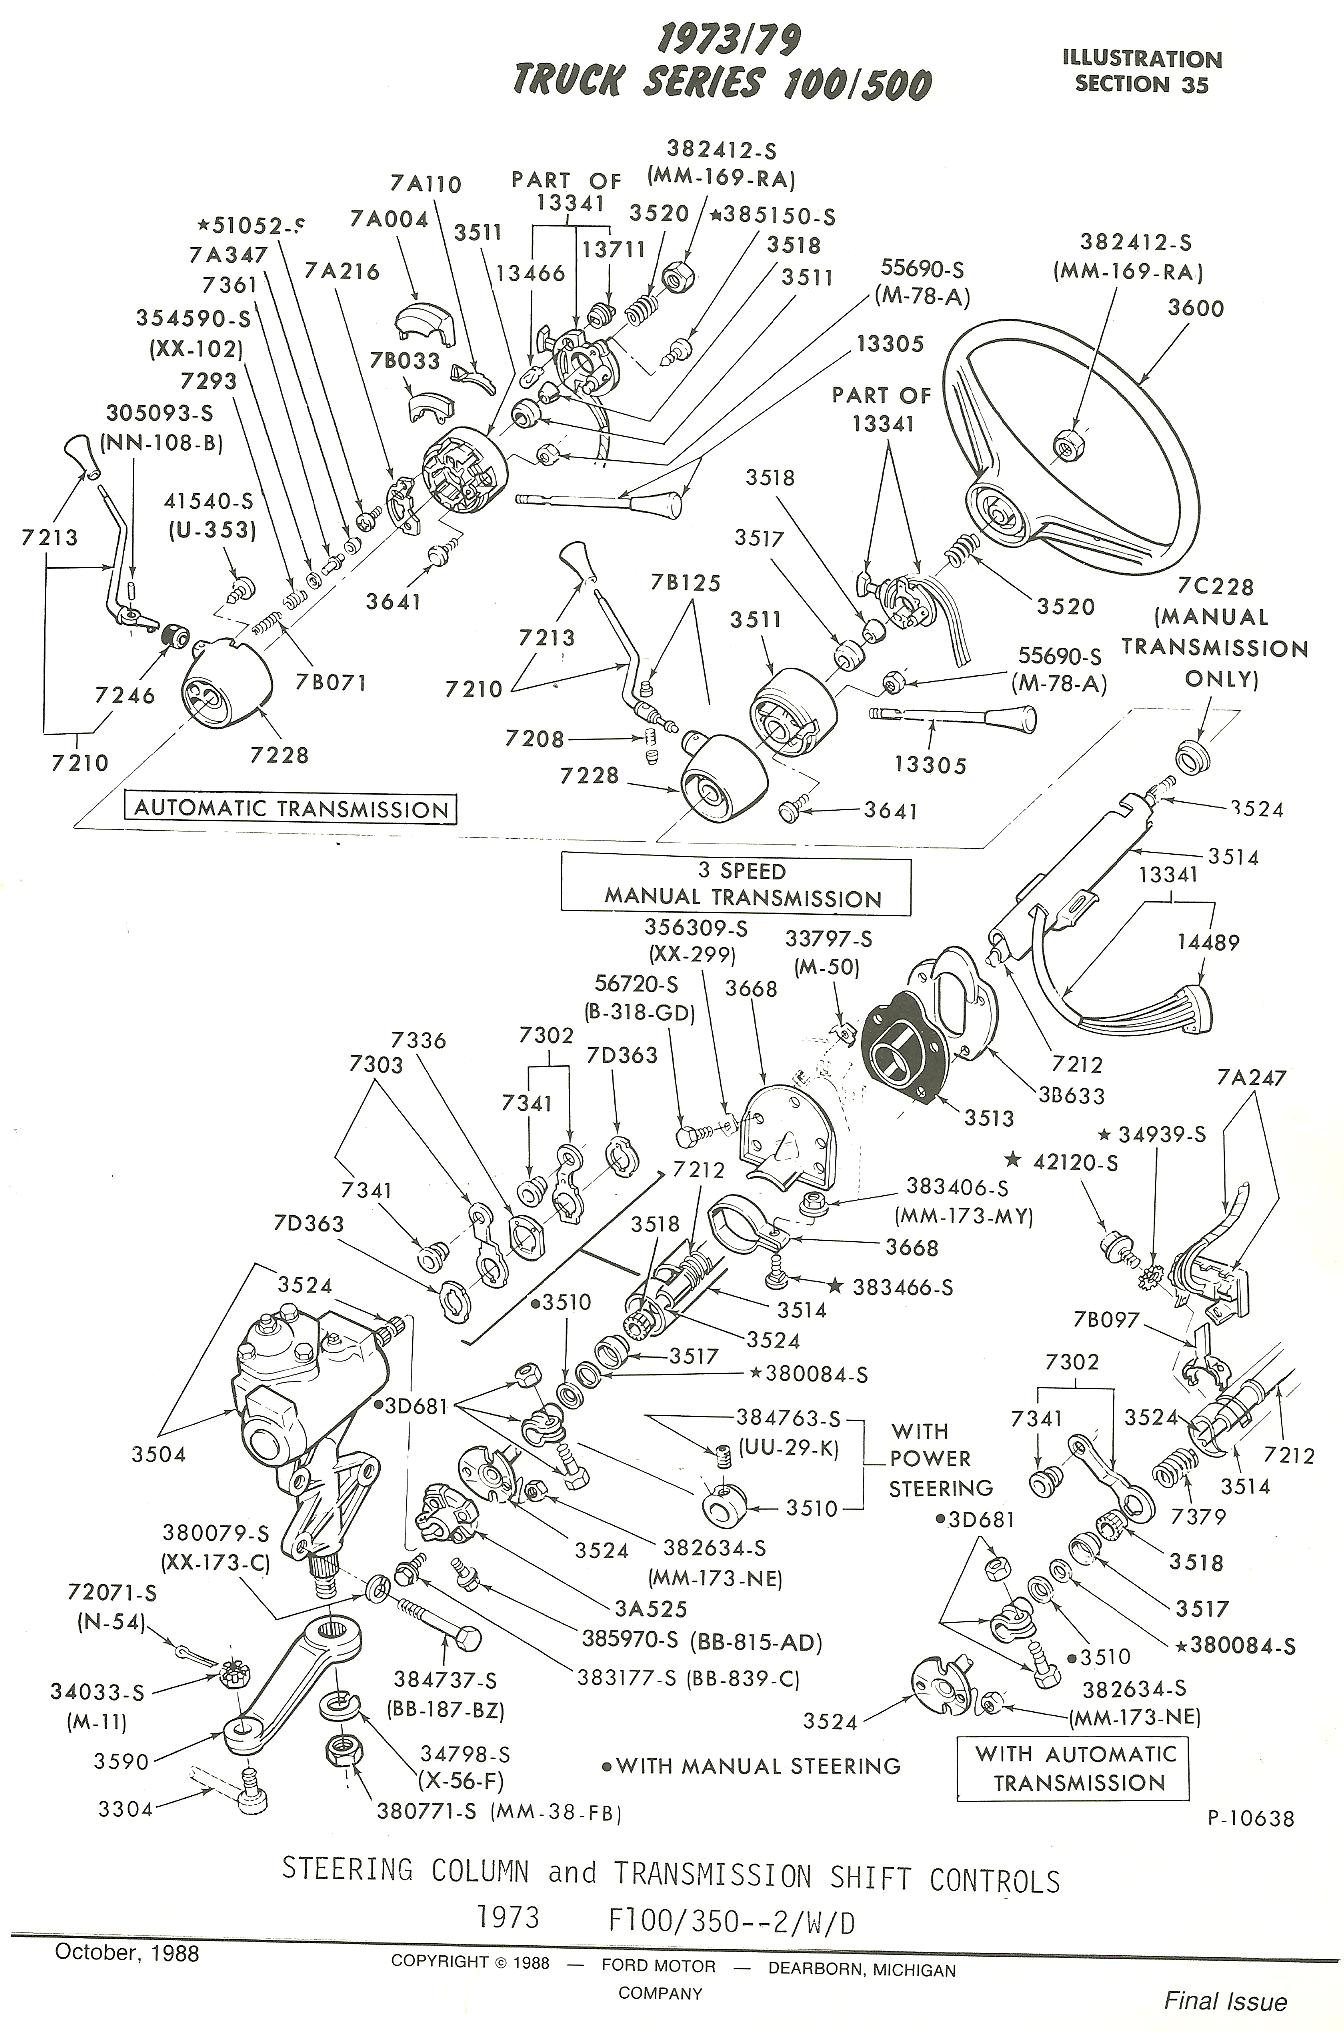 1974 F 100 Ford Steering Column Wiring Diagram Doing 1968 Truck Flashback F100 S Parts All Associated Rh Flashbackf100s Com 1975 1966